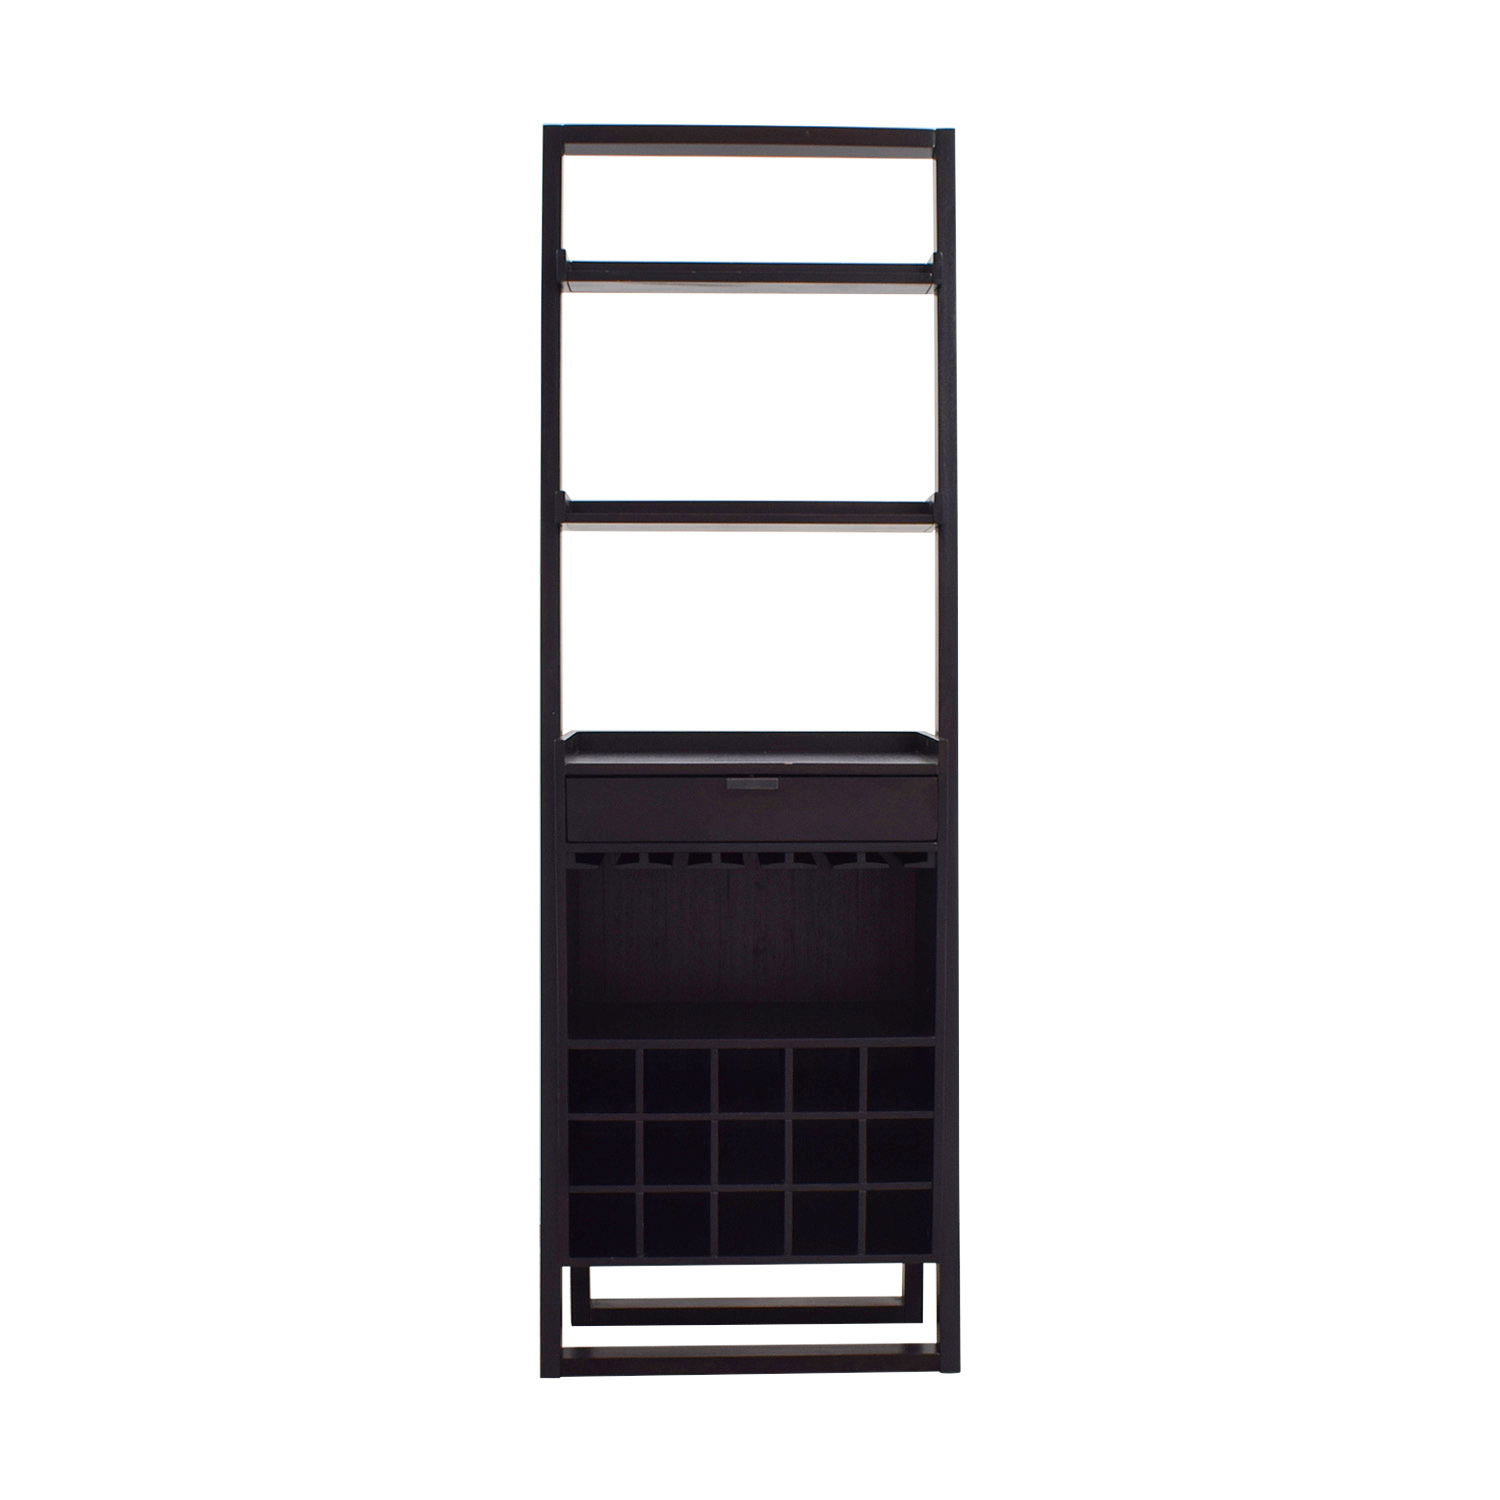 buy Crate & Barrel Wine Bar with Leaning Shelves Crate & Barrel Bookcases & Shelving